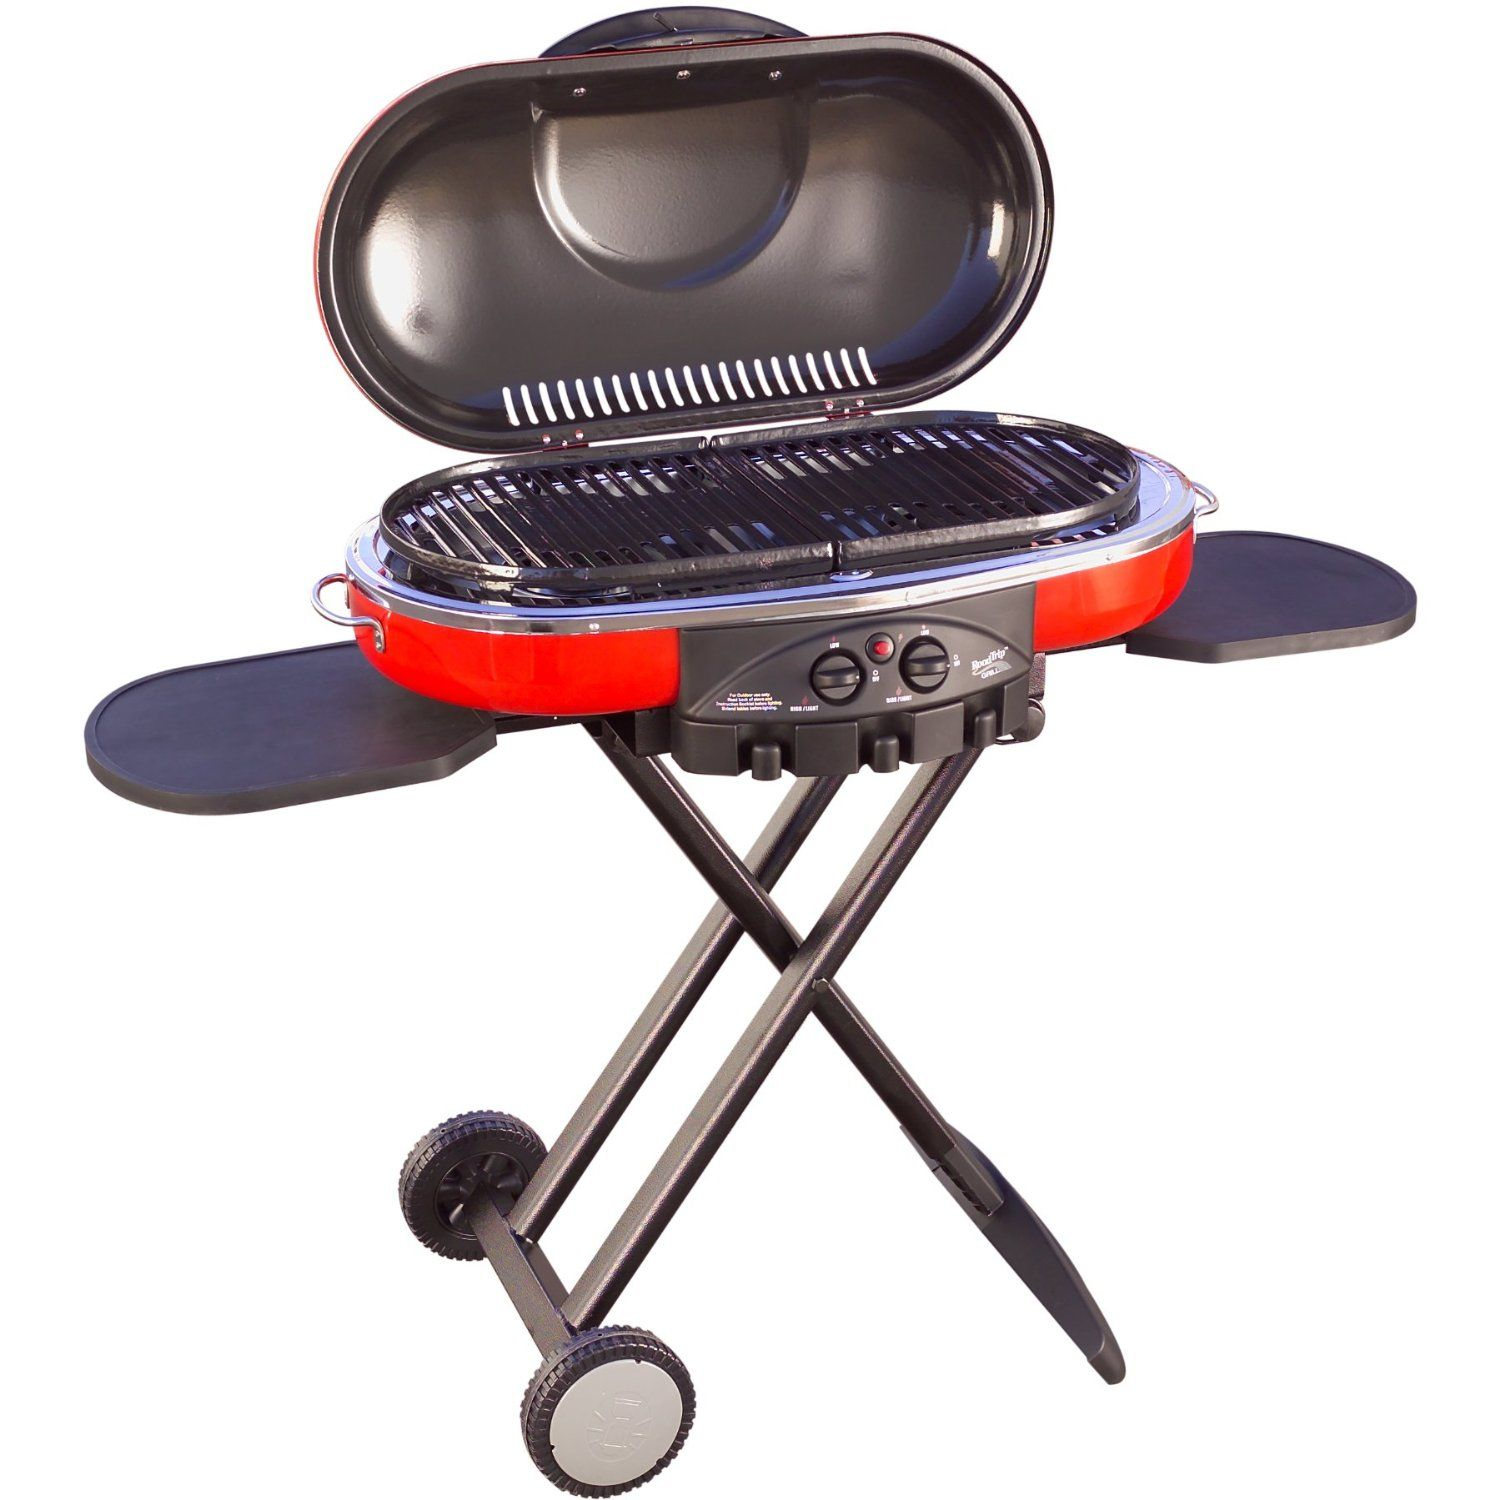 The Coleman RoadTrip LX Series of grills with carts make exceptional  tailgating and camping grills